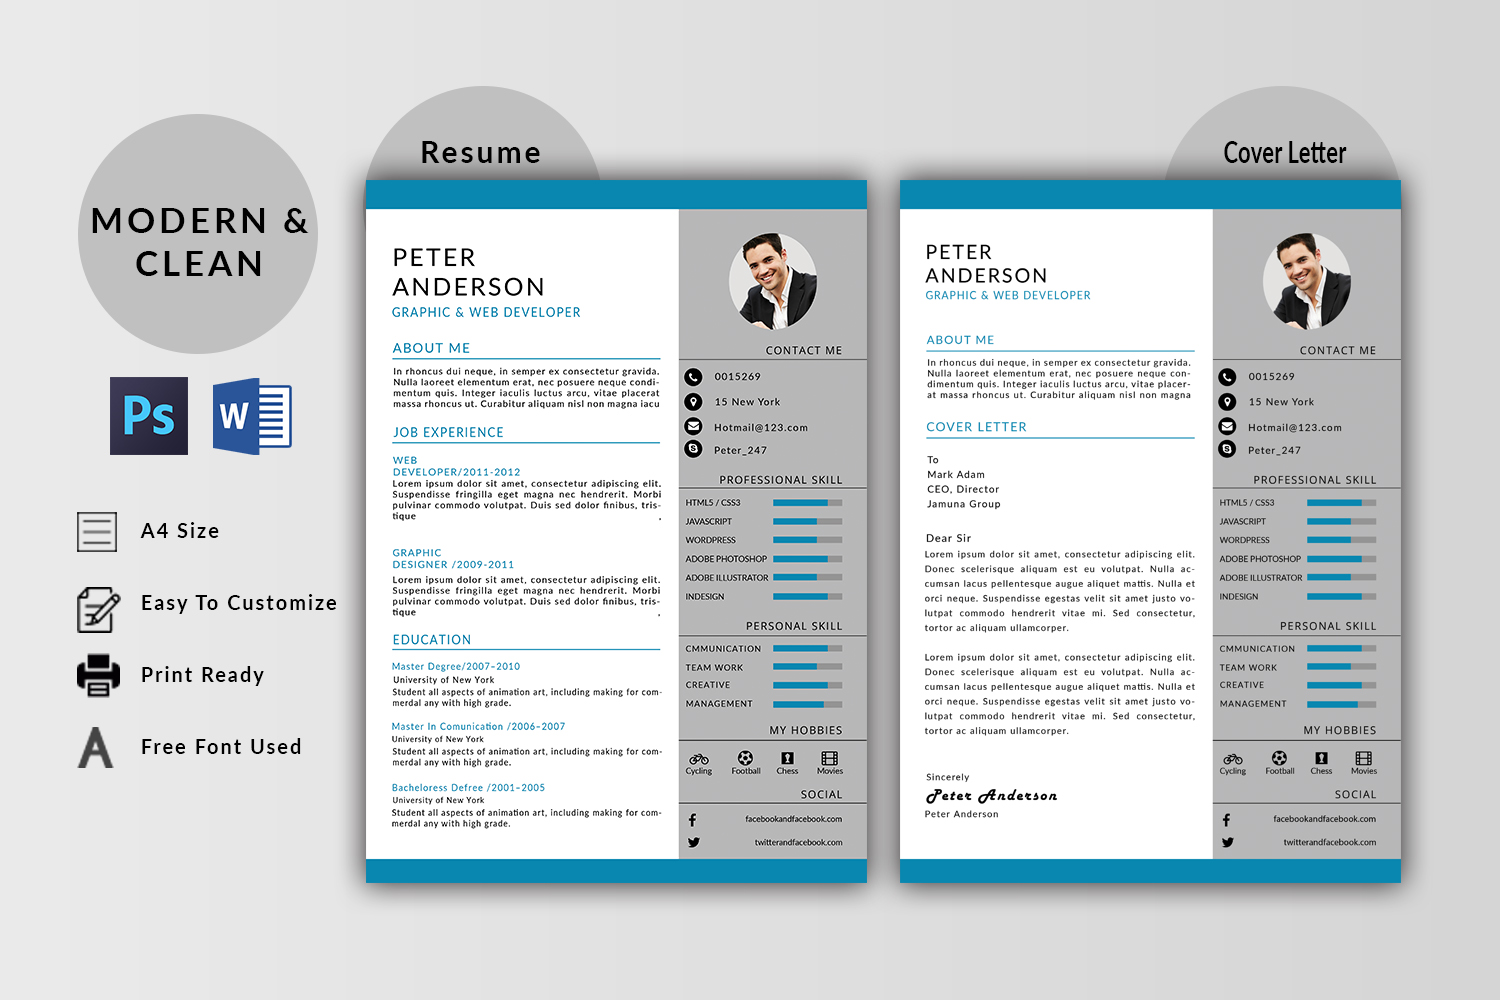 Peter Anderson Resume Template